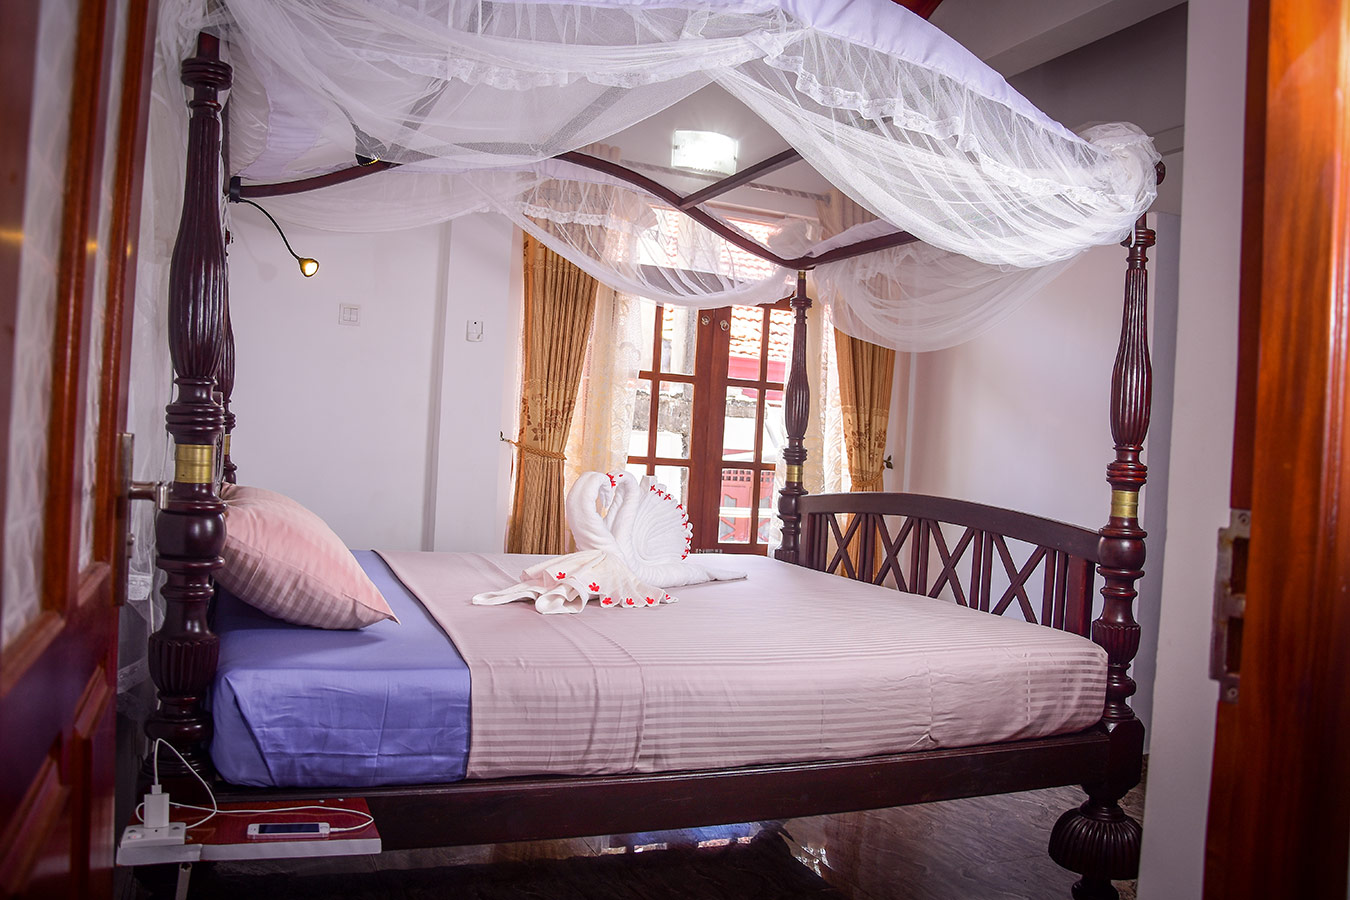 channa villa rooms